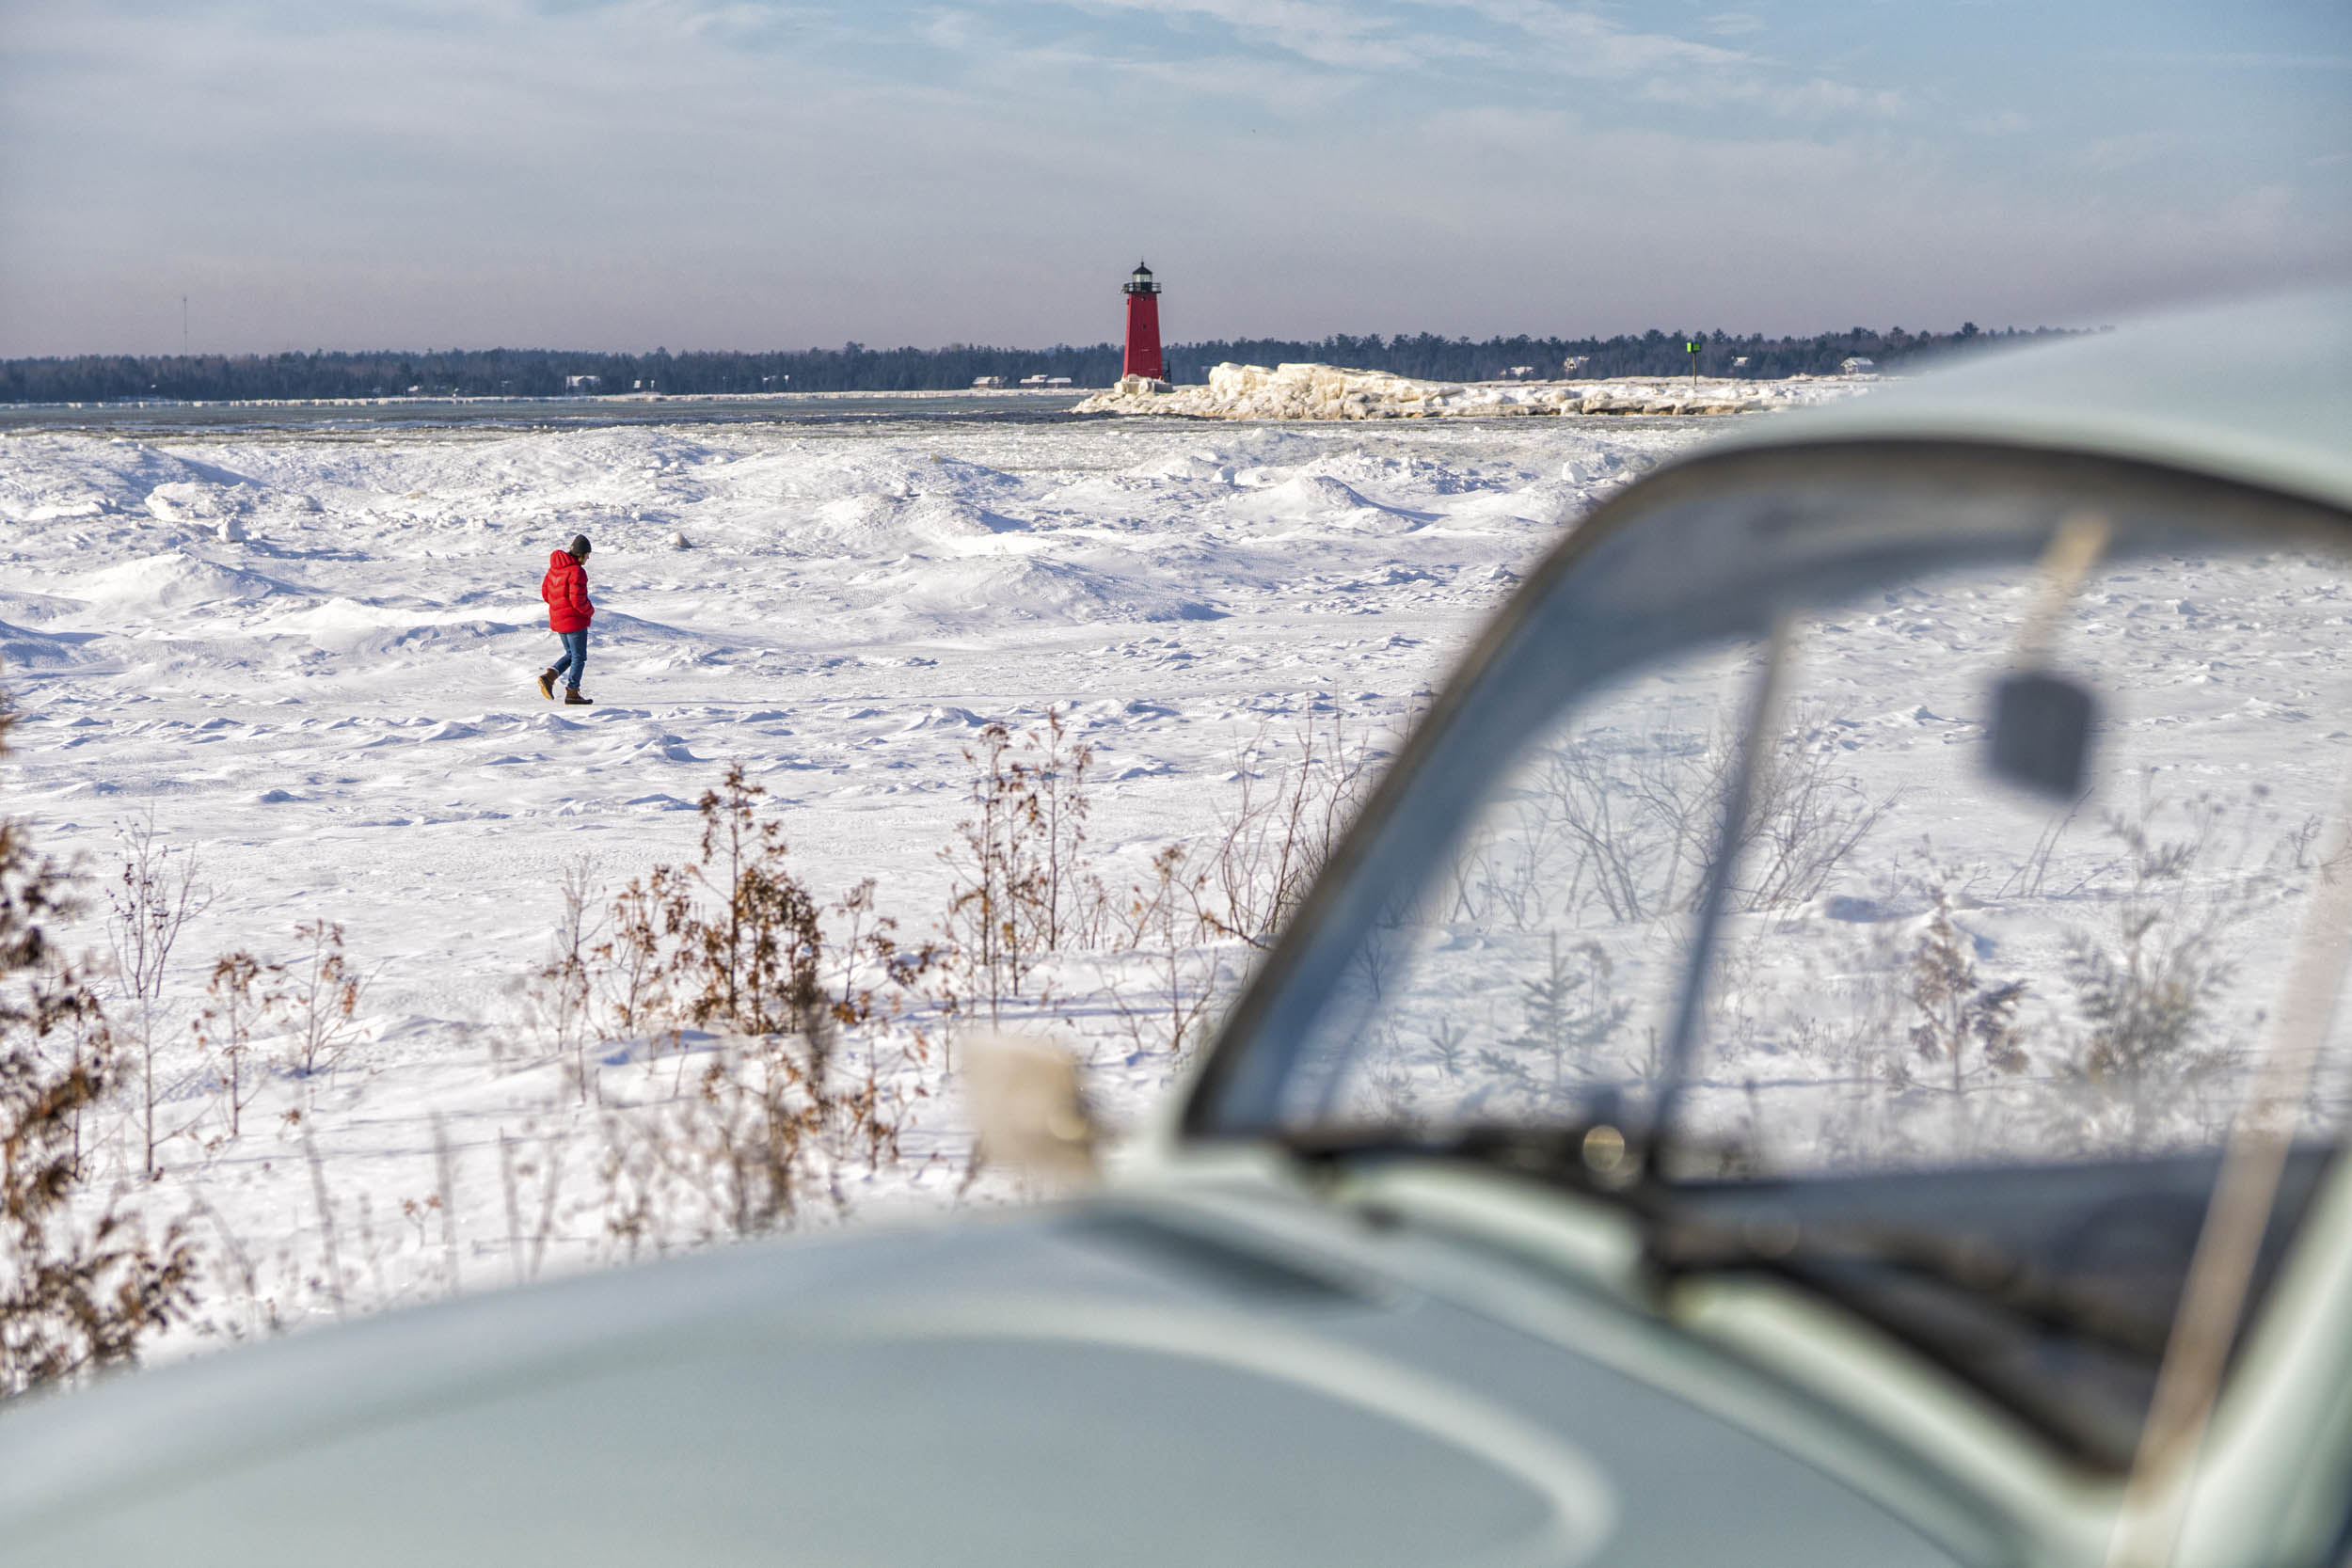 Grant explores the frozen shores of Lake Michigan on the last morning. We wouldn't have mentally survived the trip if we hadn't taken the time to adventure a bit and enjoy the sights.